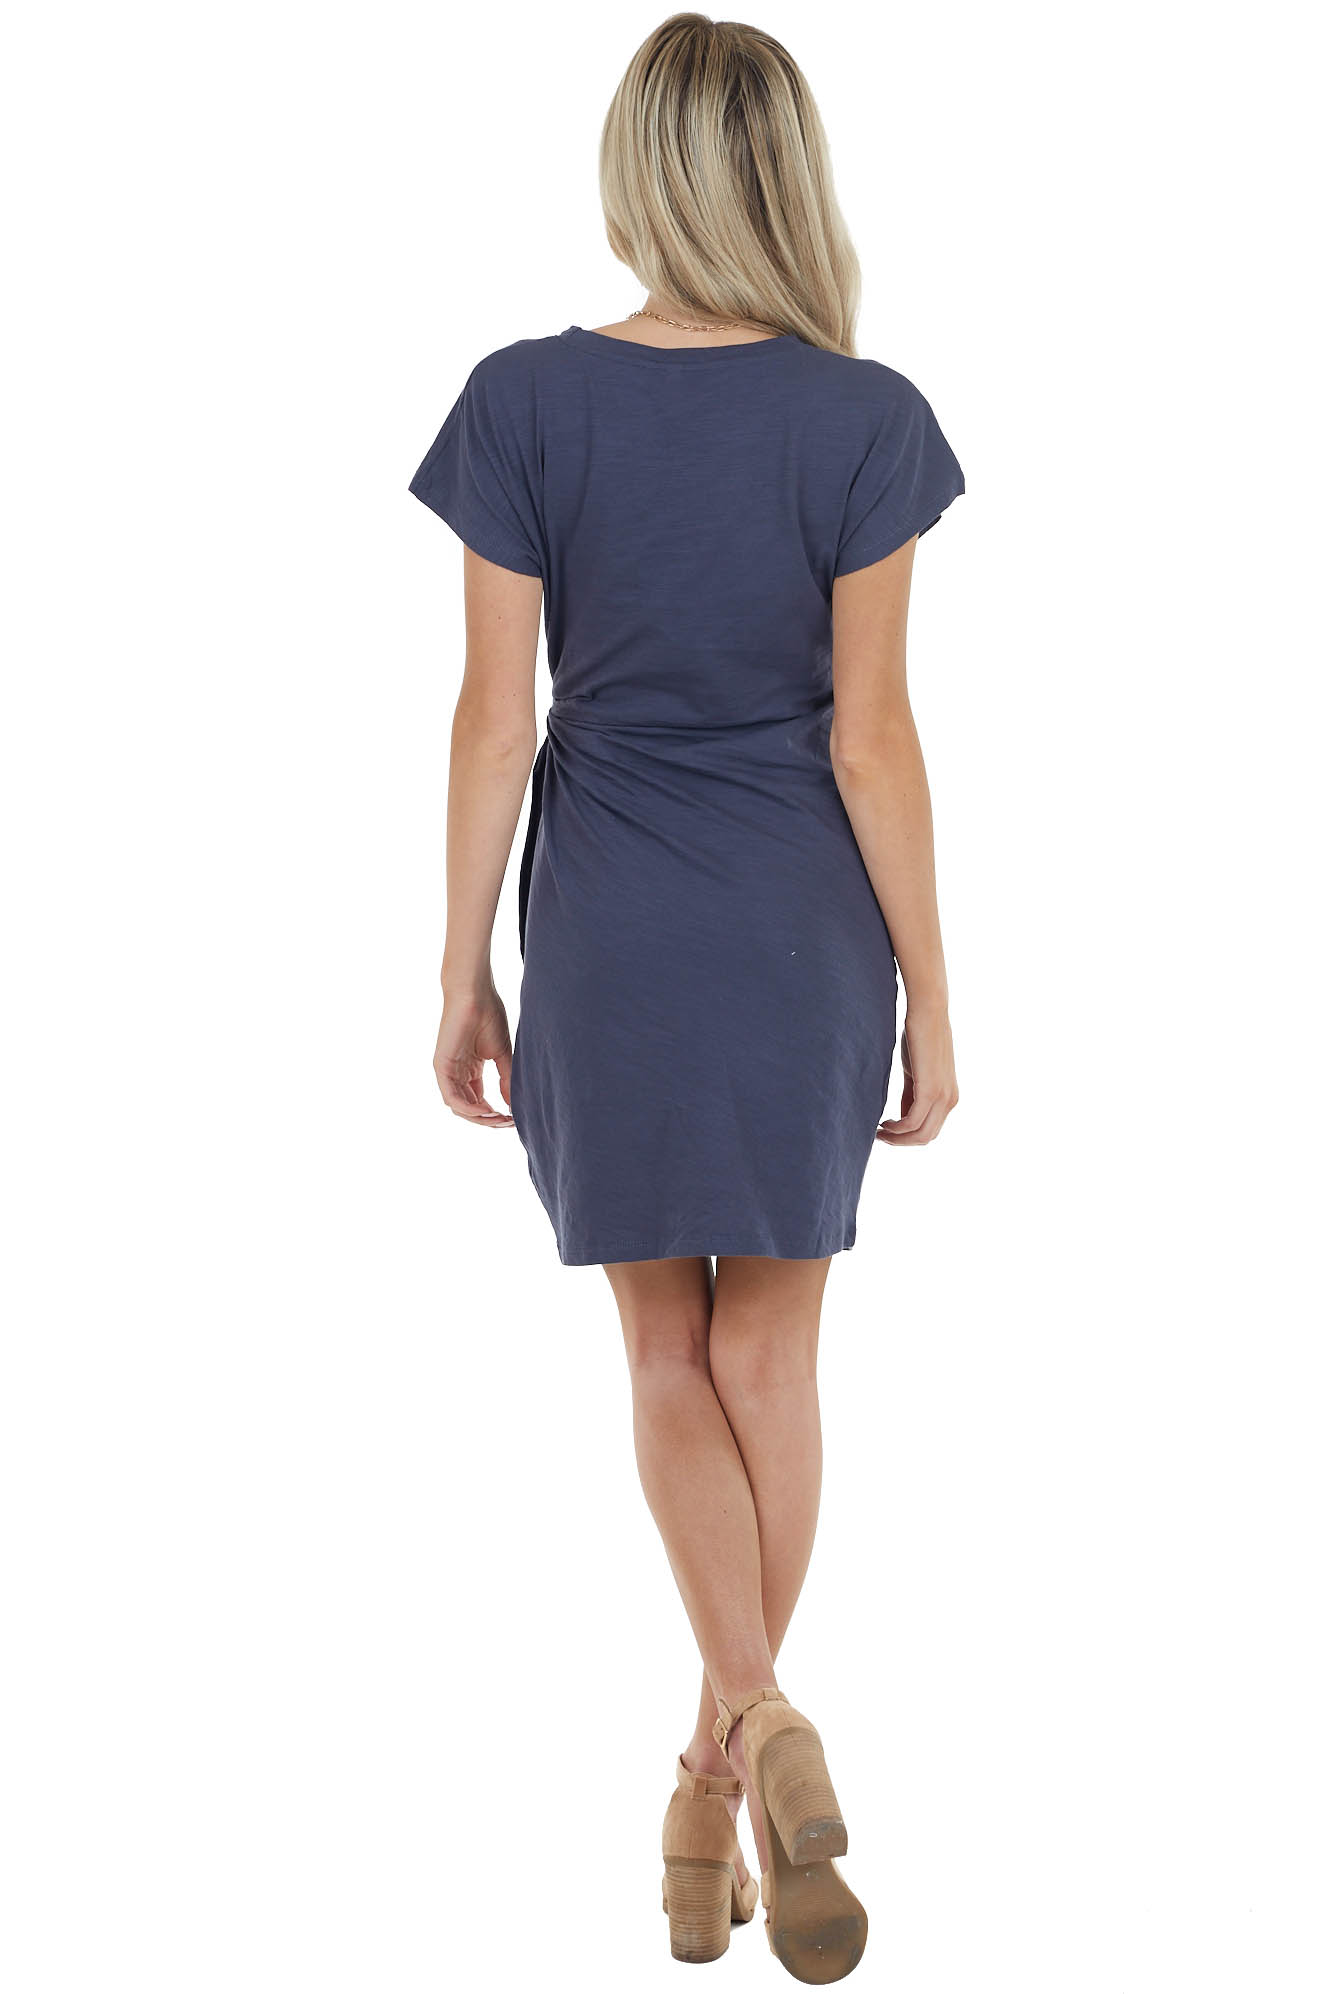 Dusty Navy Short Sleeve Knit Dress With Side Tie Detail